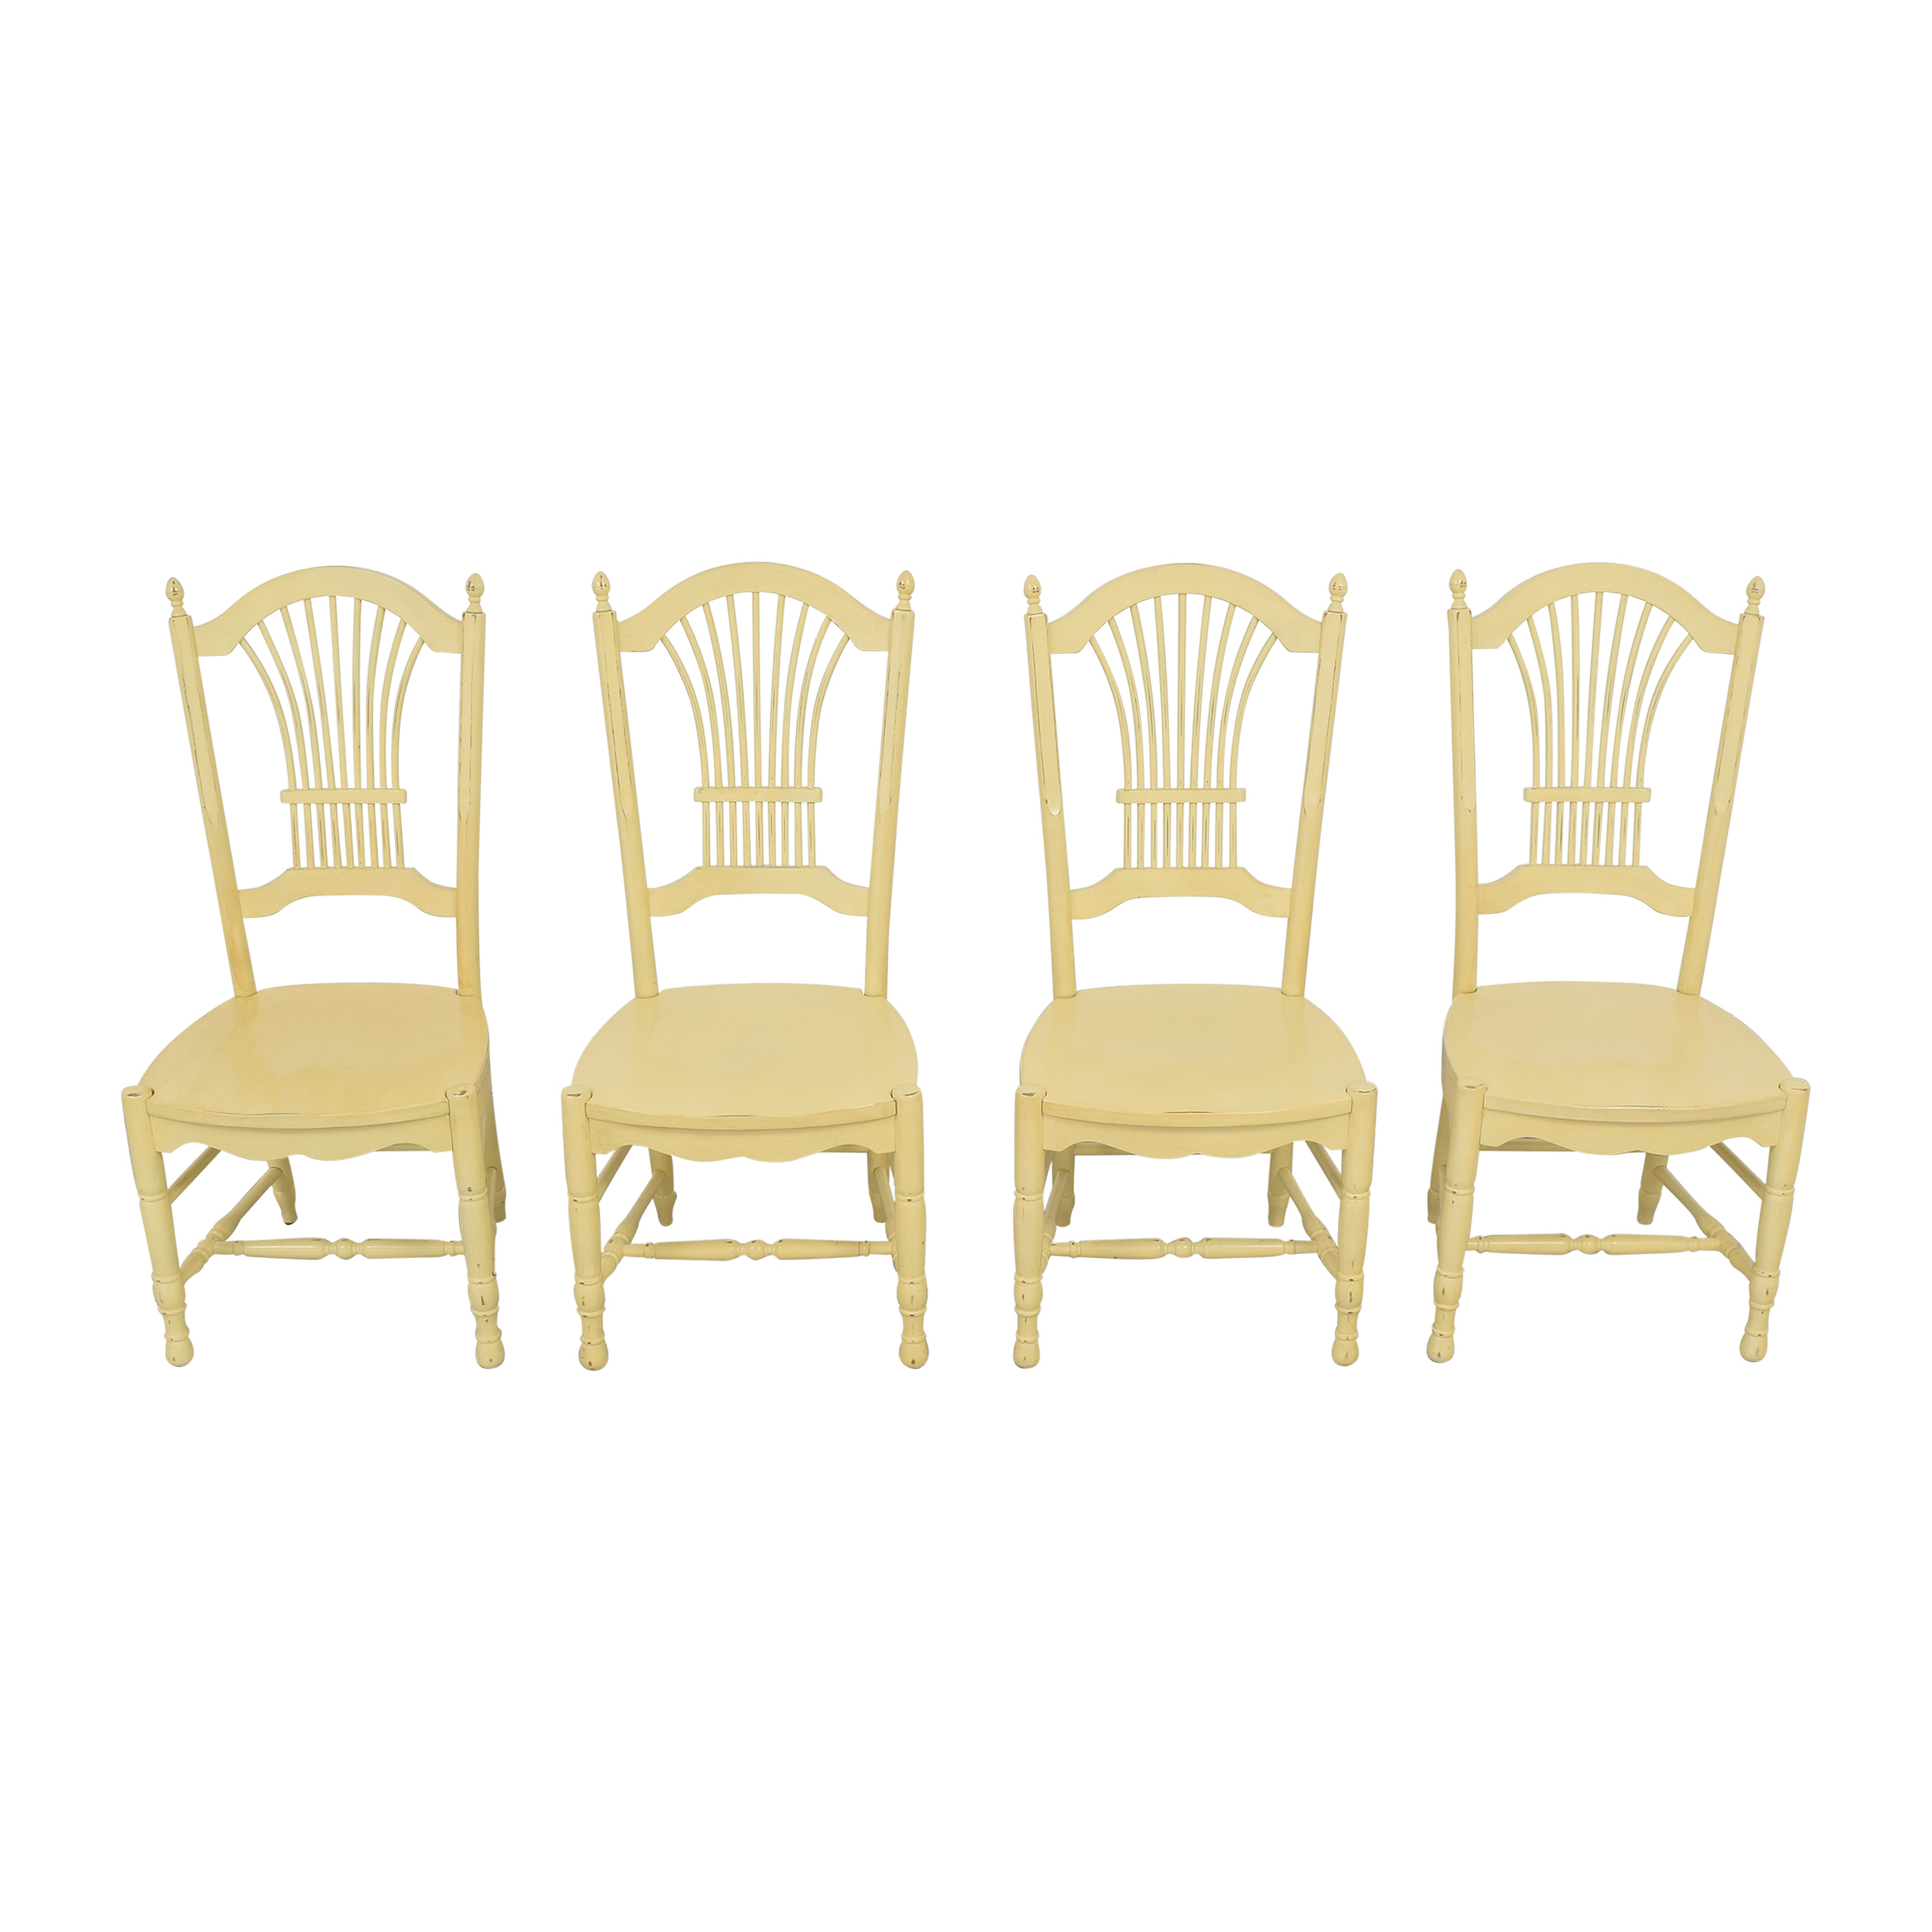 Ethan Allen Ethan Allen Wheat Back Dining Chairs for sale